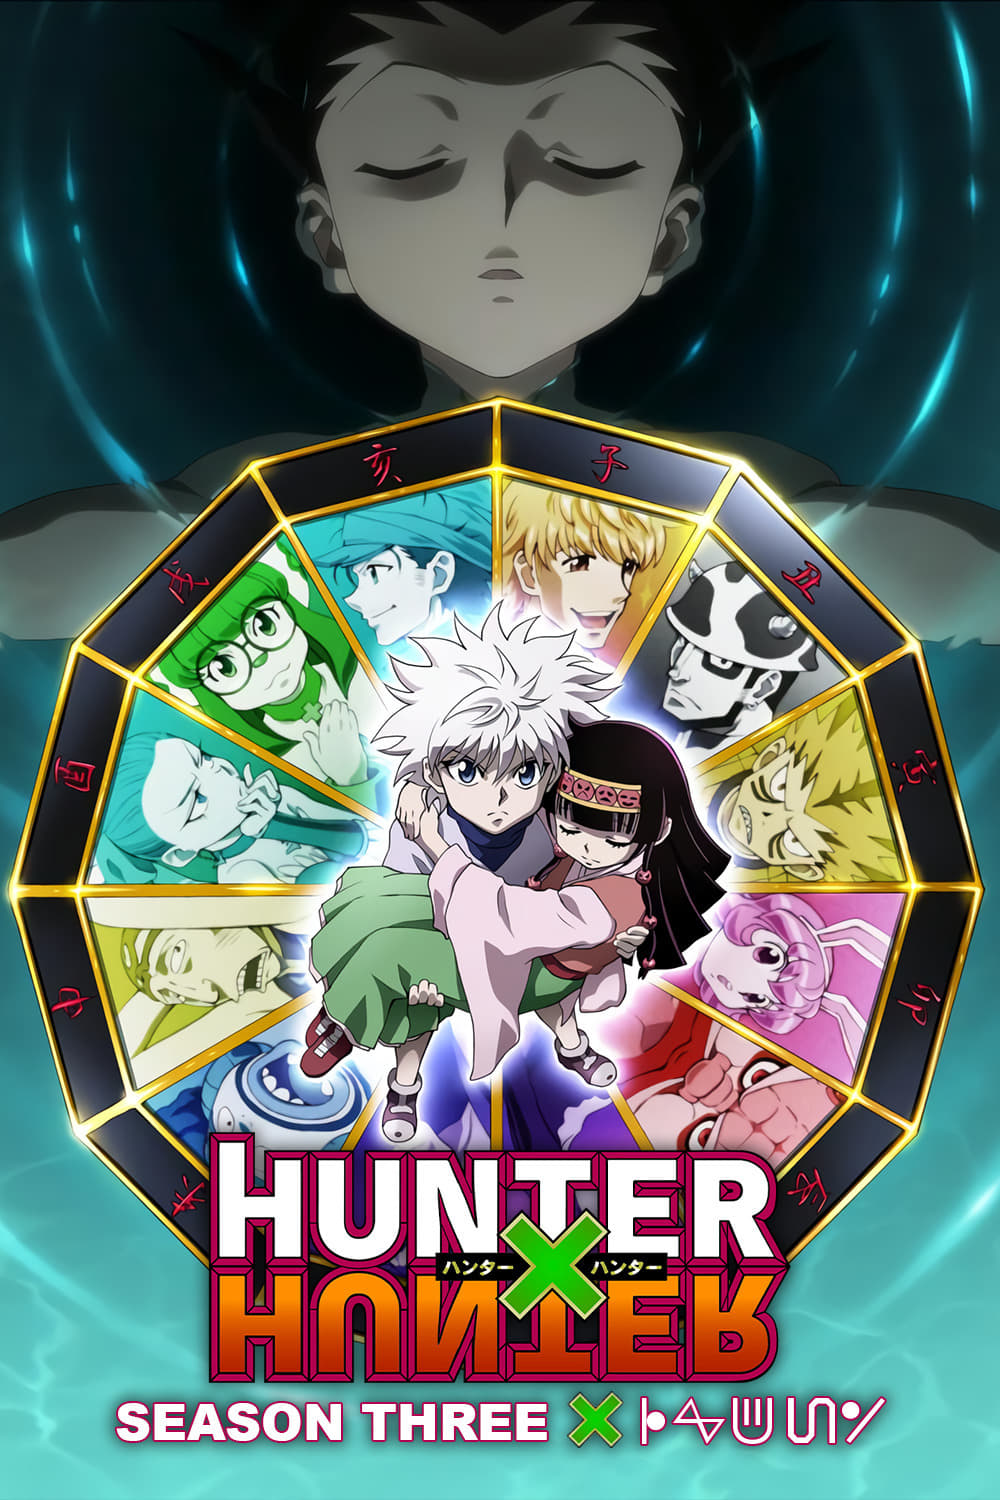 Hunter x Hunter Season 3